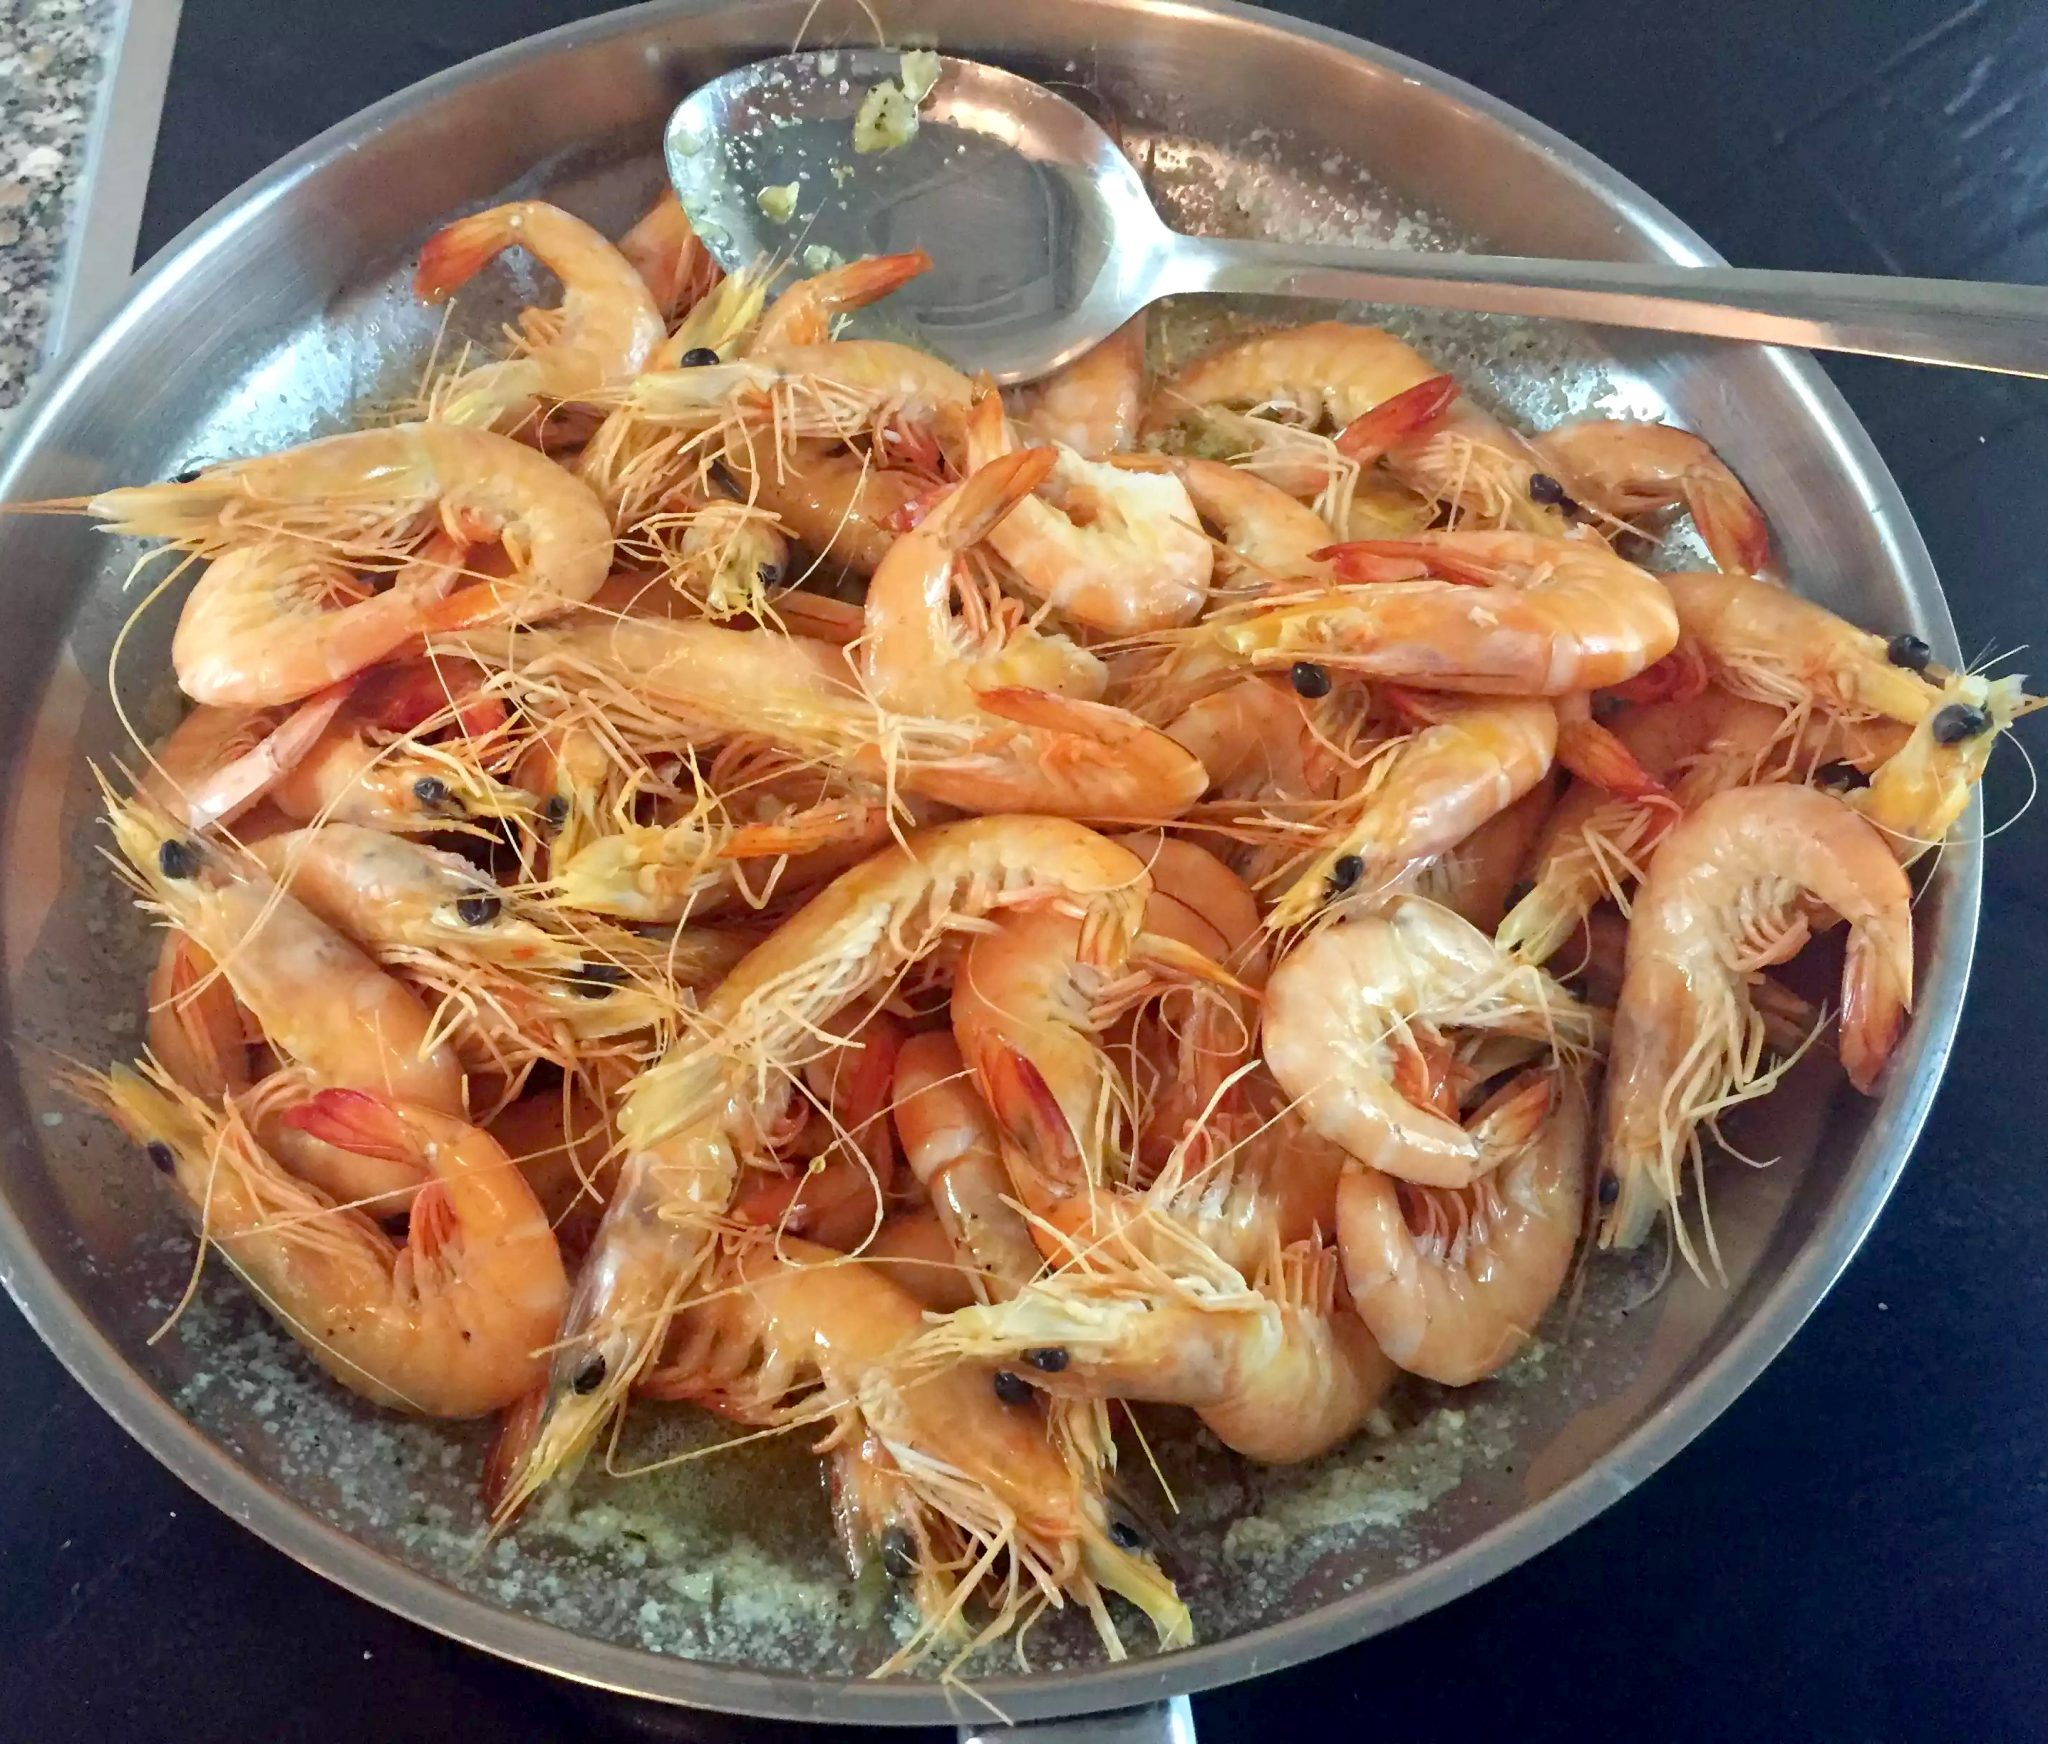 Garlic Shrimp SCD Paleo Clean-Eating, Gluten-Free, Grain-Free, Butter